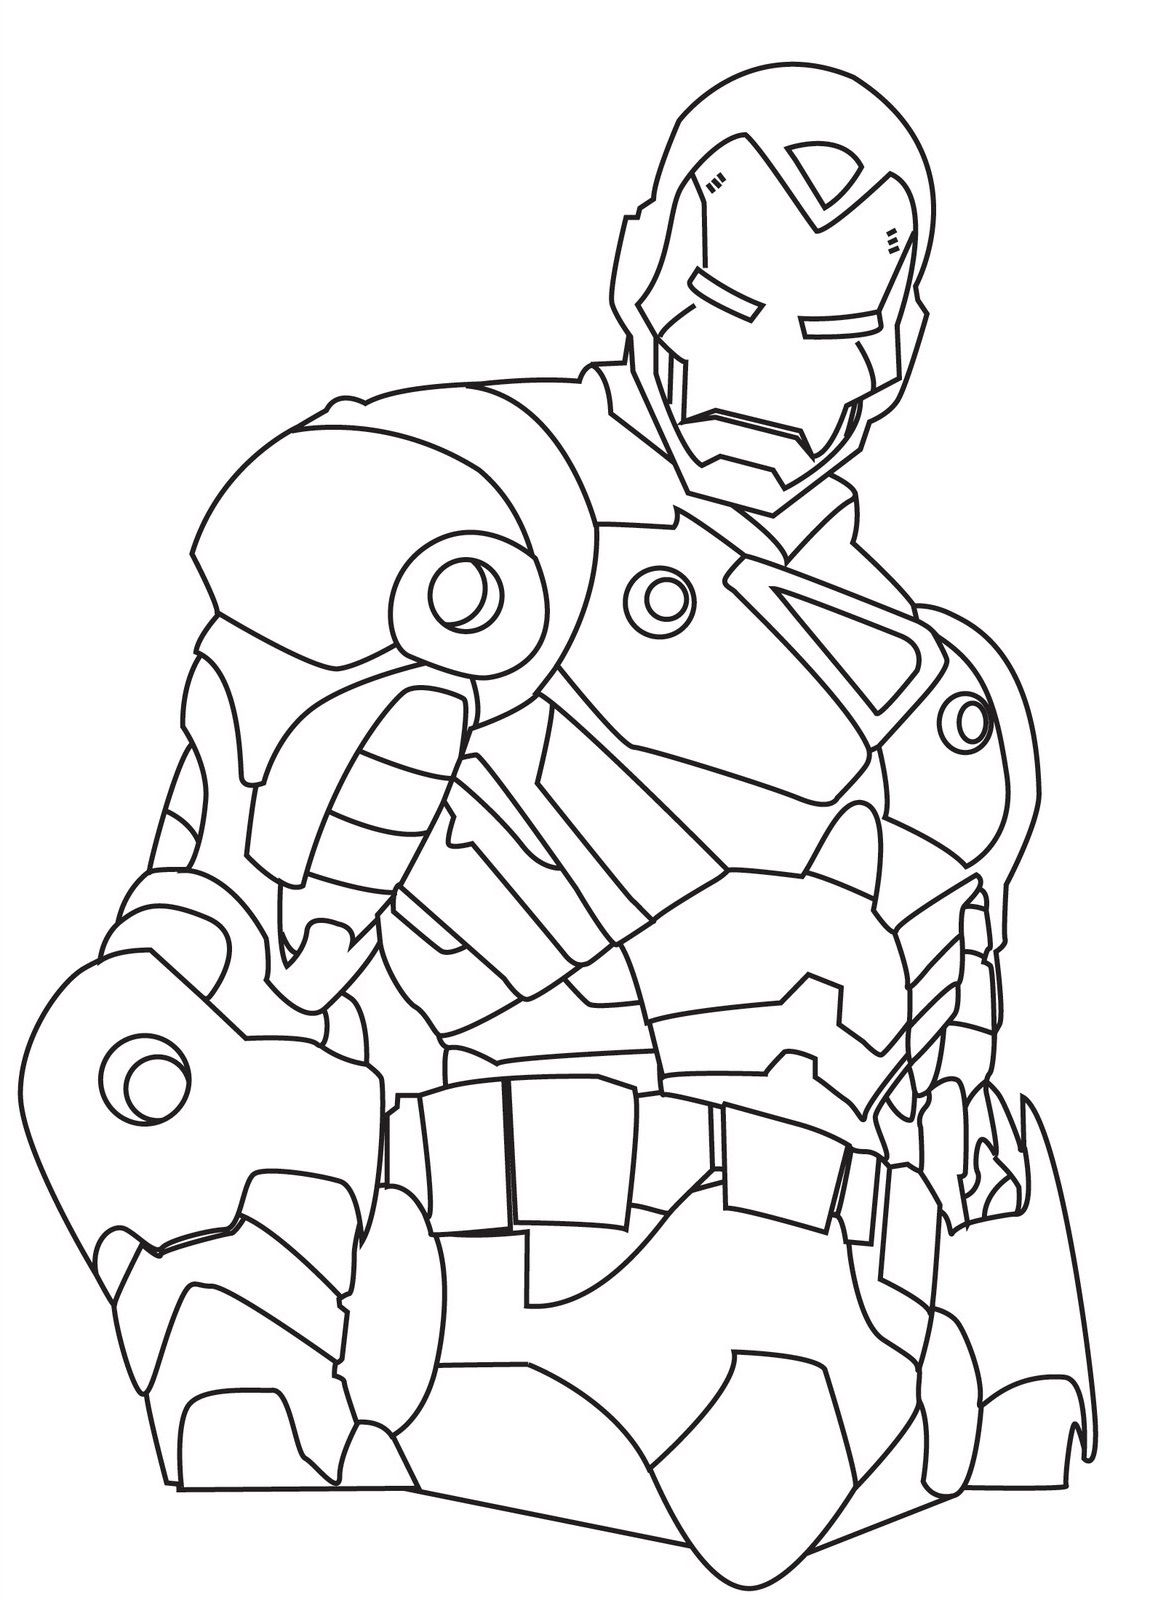 Iron Man Coloring Pages For Boys Educative Printable Superhero Coloring Unicorn Coloring Pages Superhero Coloring Pages